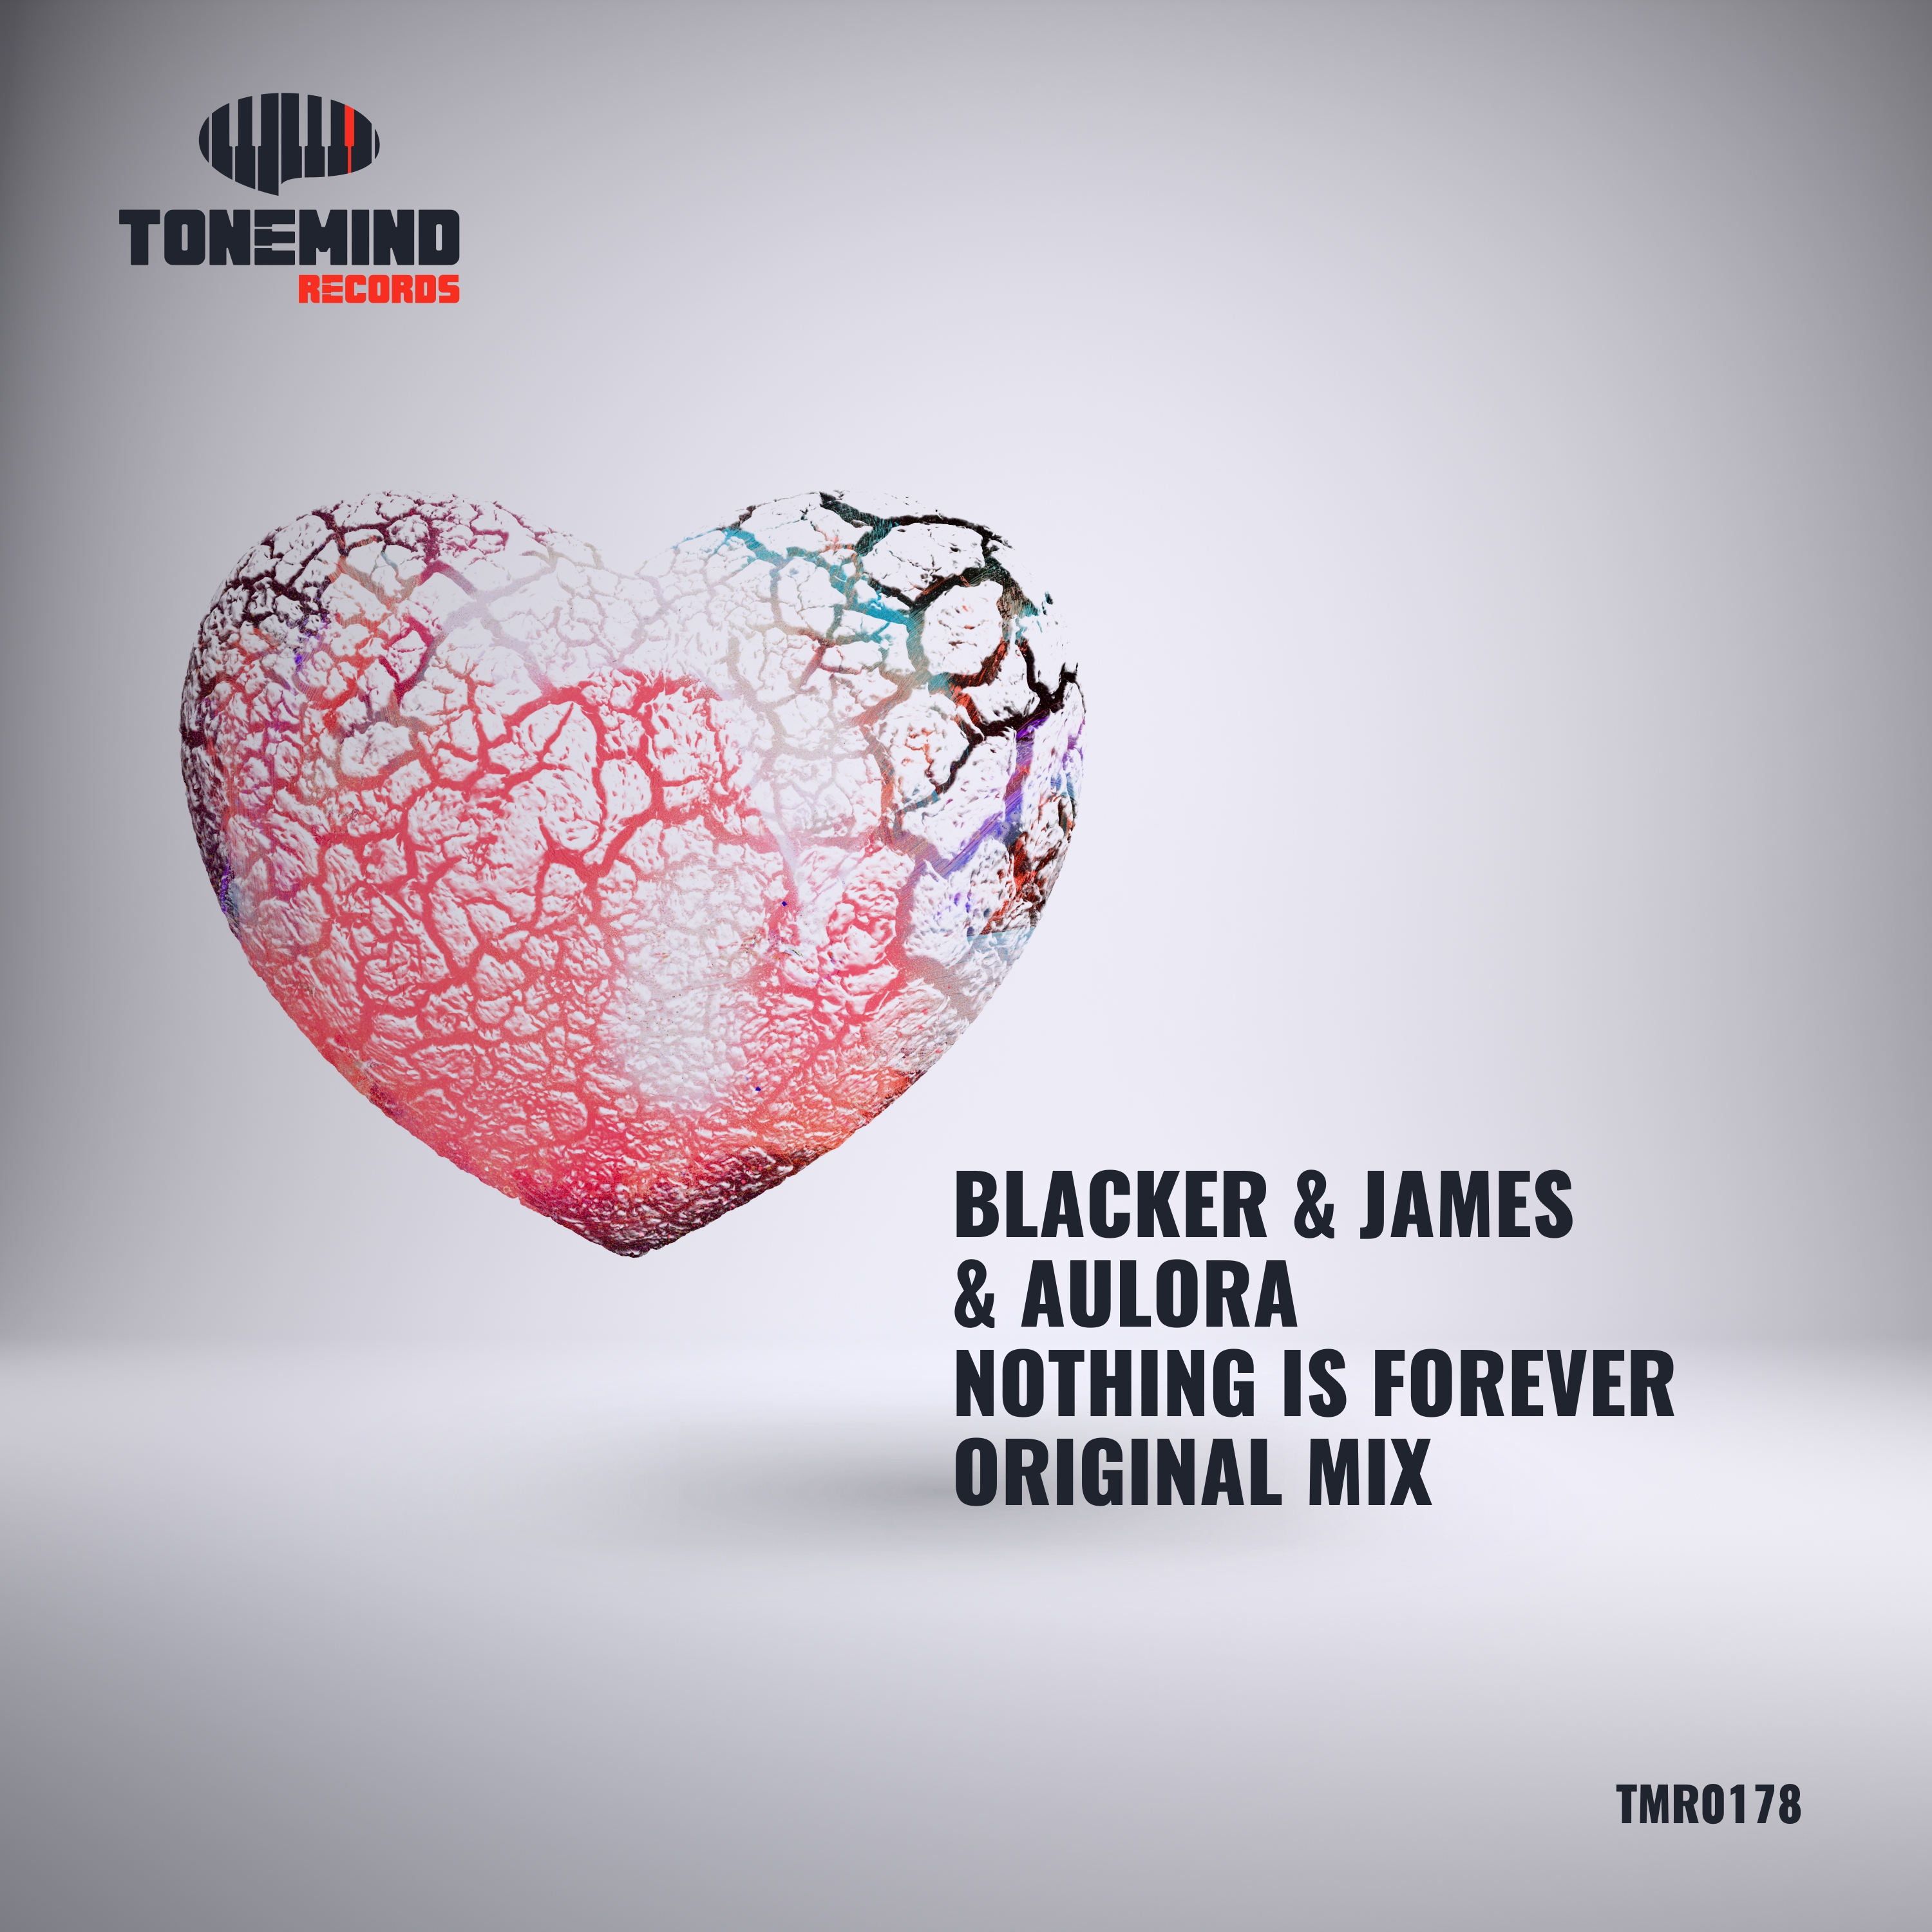 Blacker & James & Aulora - Nothing Is Forever (Original mix)